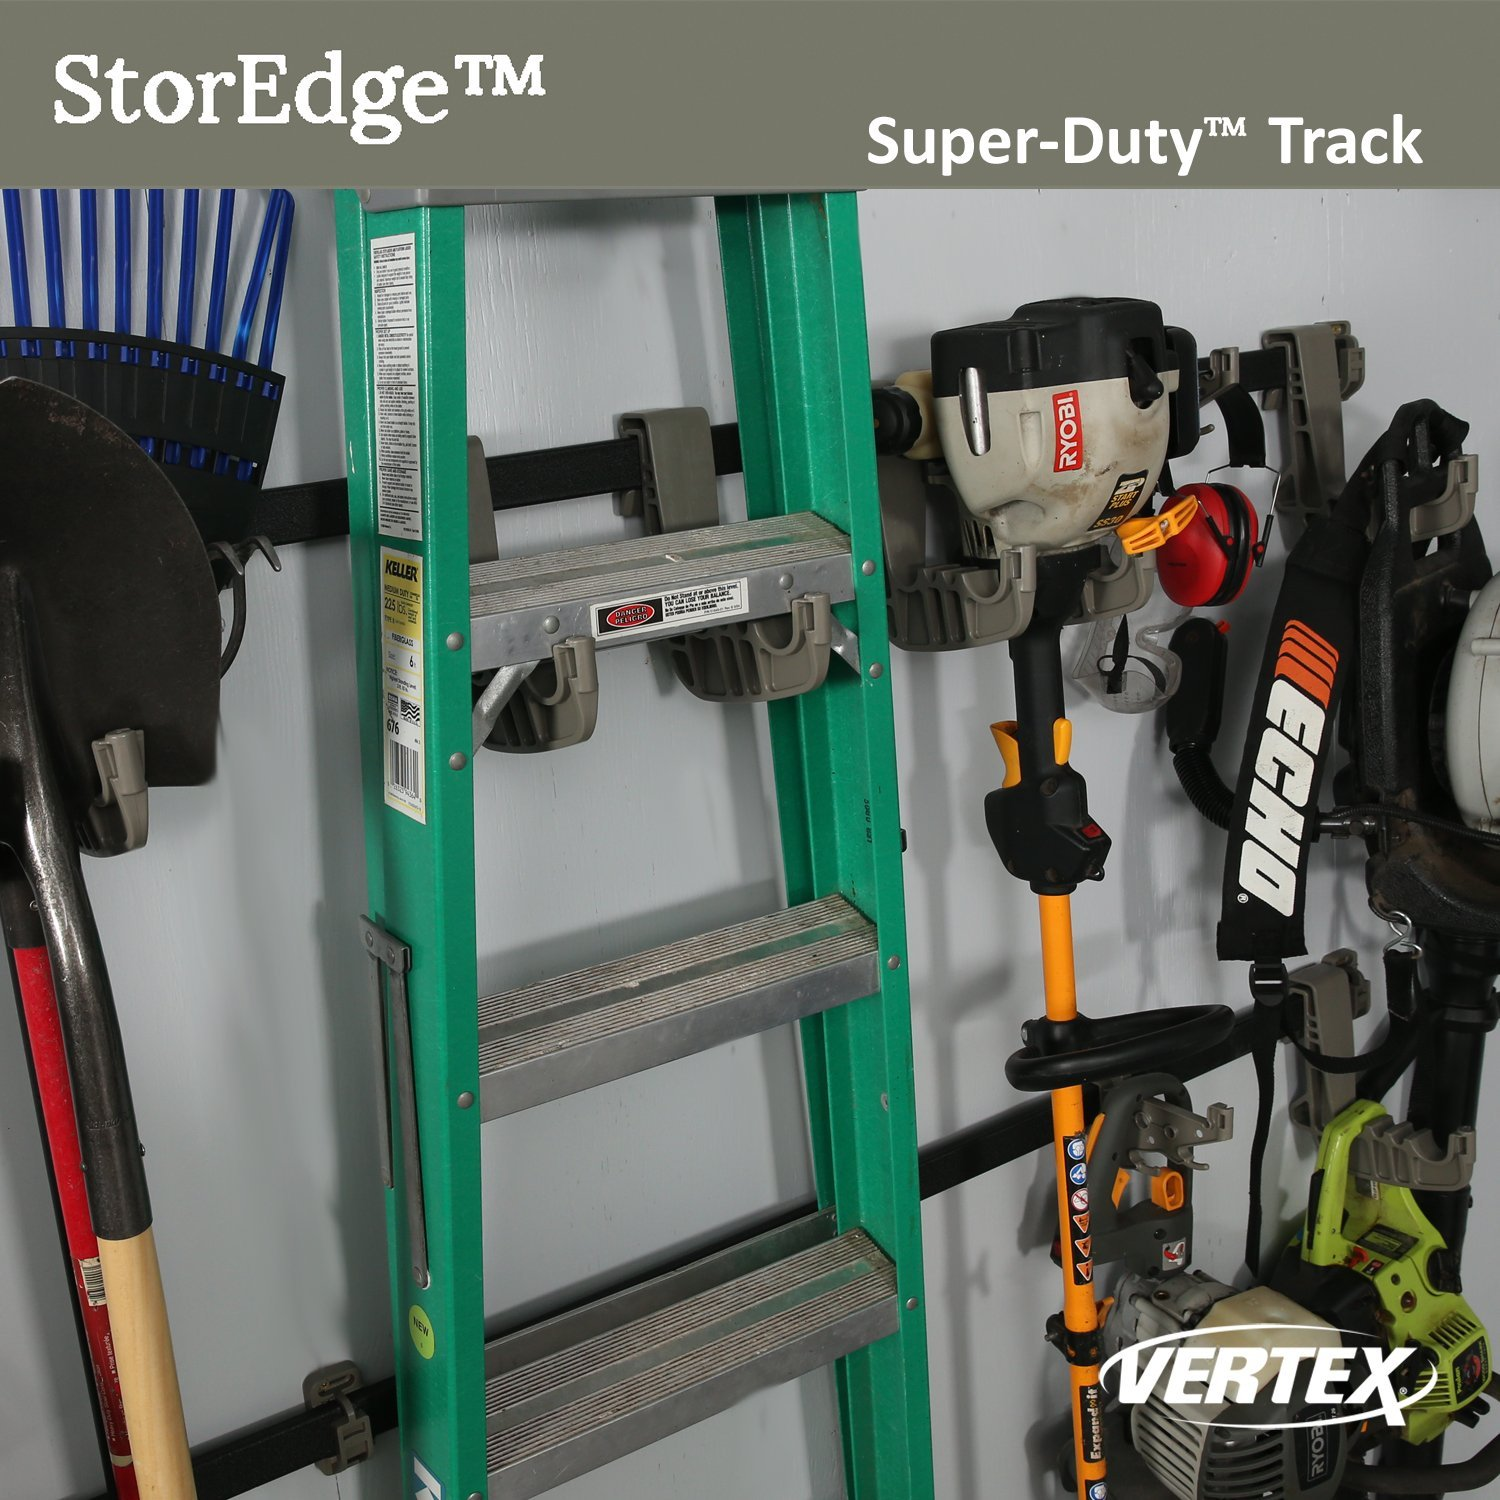 StorEdge Super-Duty Track By Vertex For StorEdge Systems - Made In USA - Model SE608 (8 Tracks)